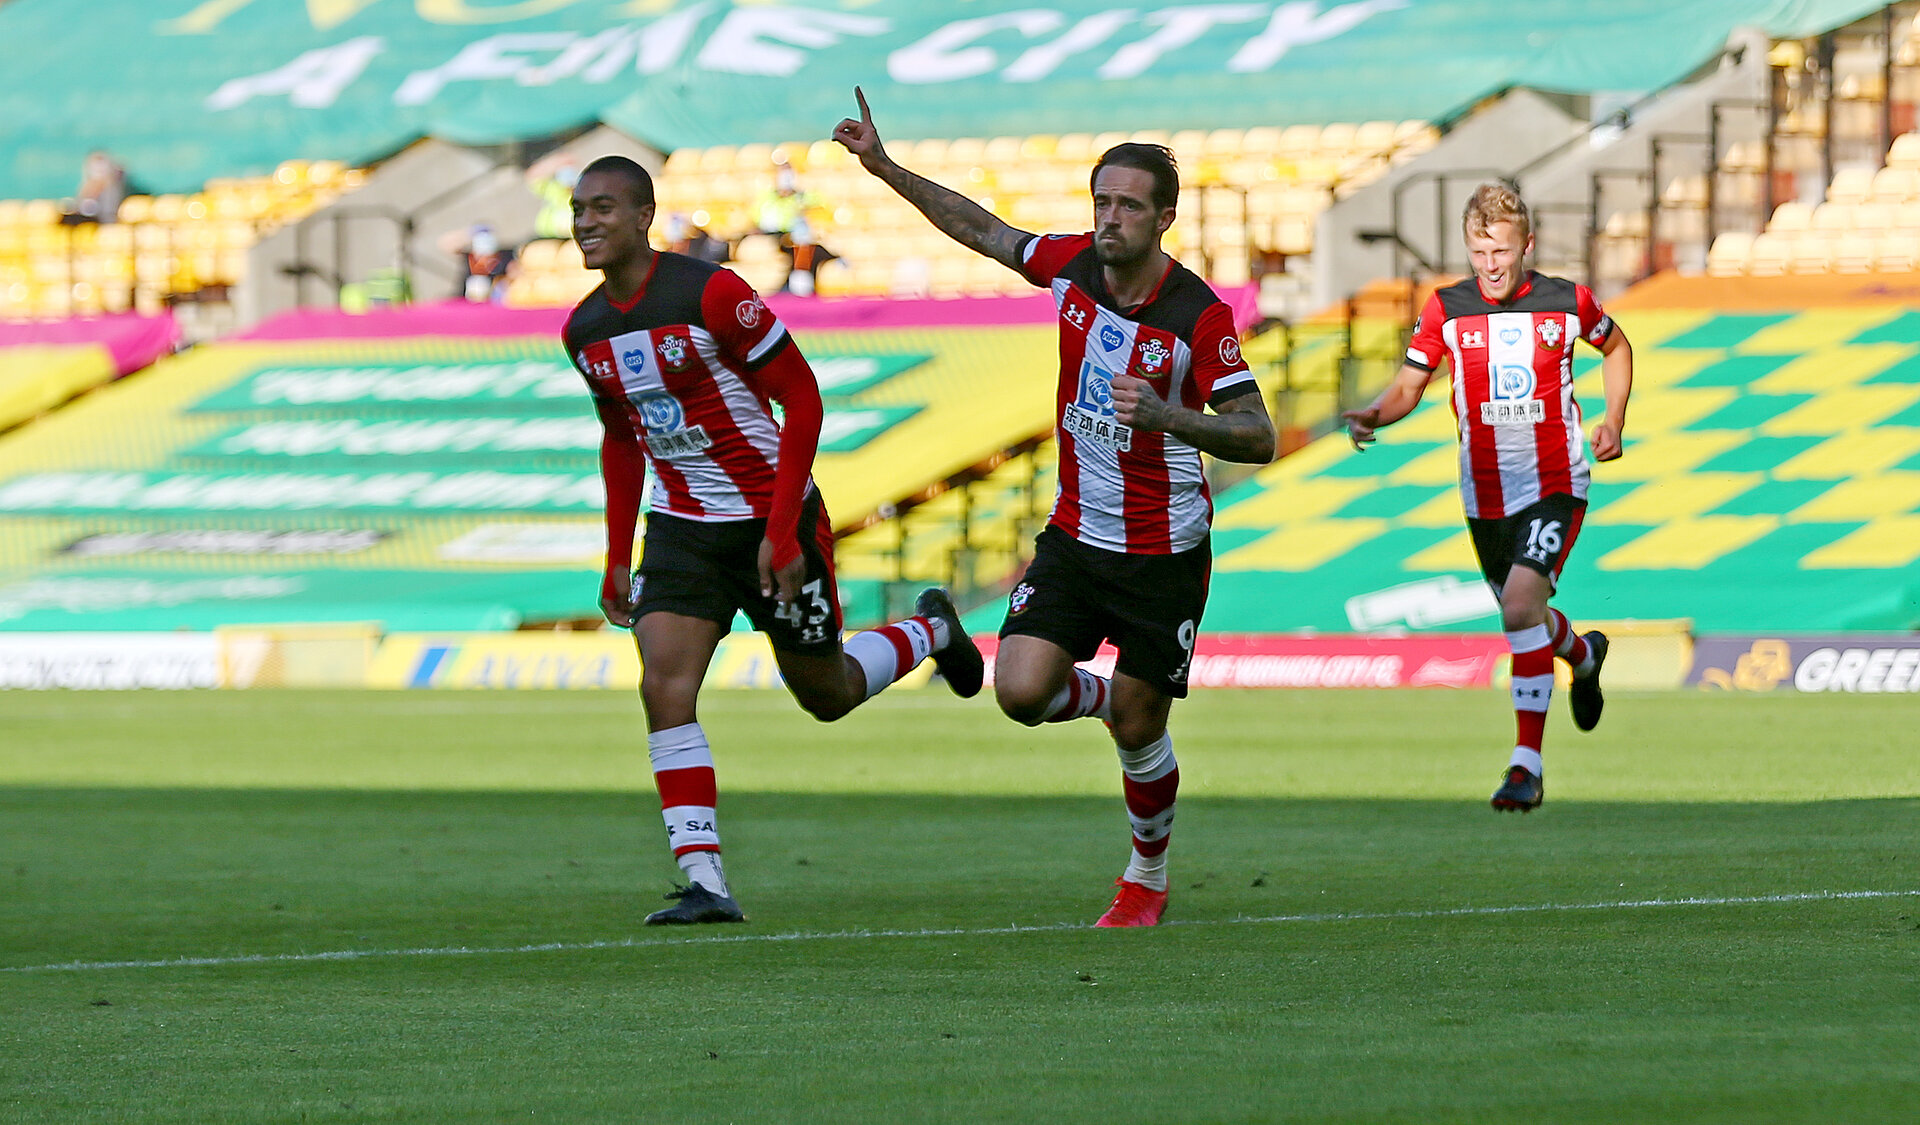 NORWICH, ENGLAND - JUNE 19: Danny Ings(centre) of Southampton celenrates his goal during the Premier League match between Norwich City and Southampton FC at Carrow Road on June 19, 2020 in Norwich, United Kingdom. (Photo by Matt Watson/Southampton FC via Getty Images)